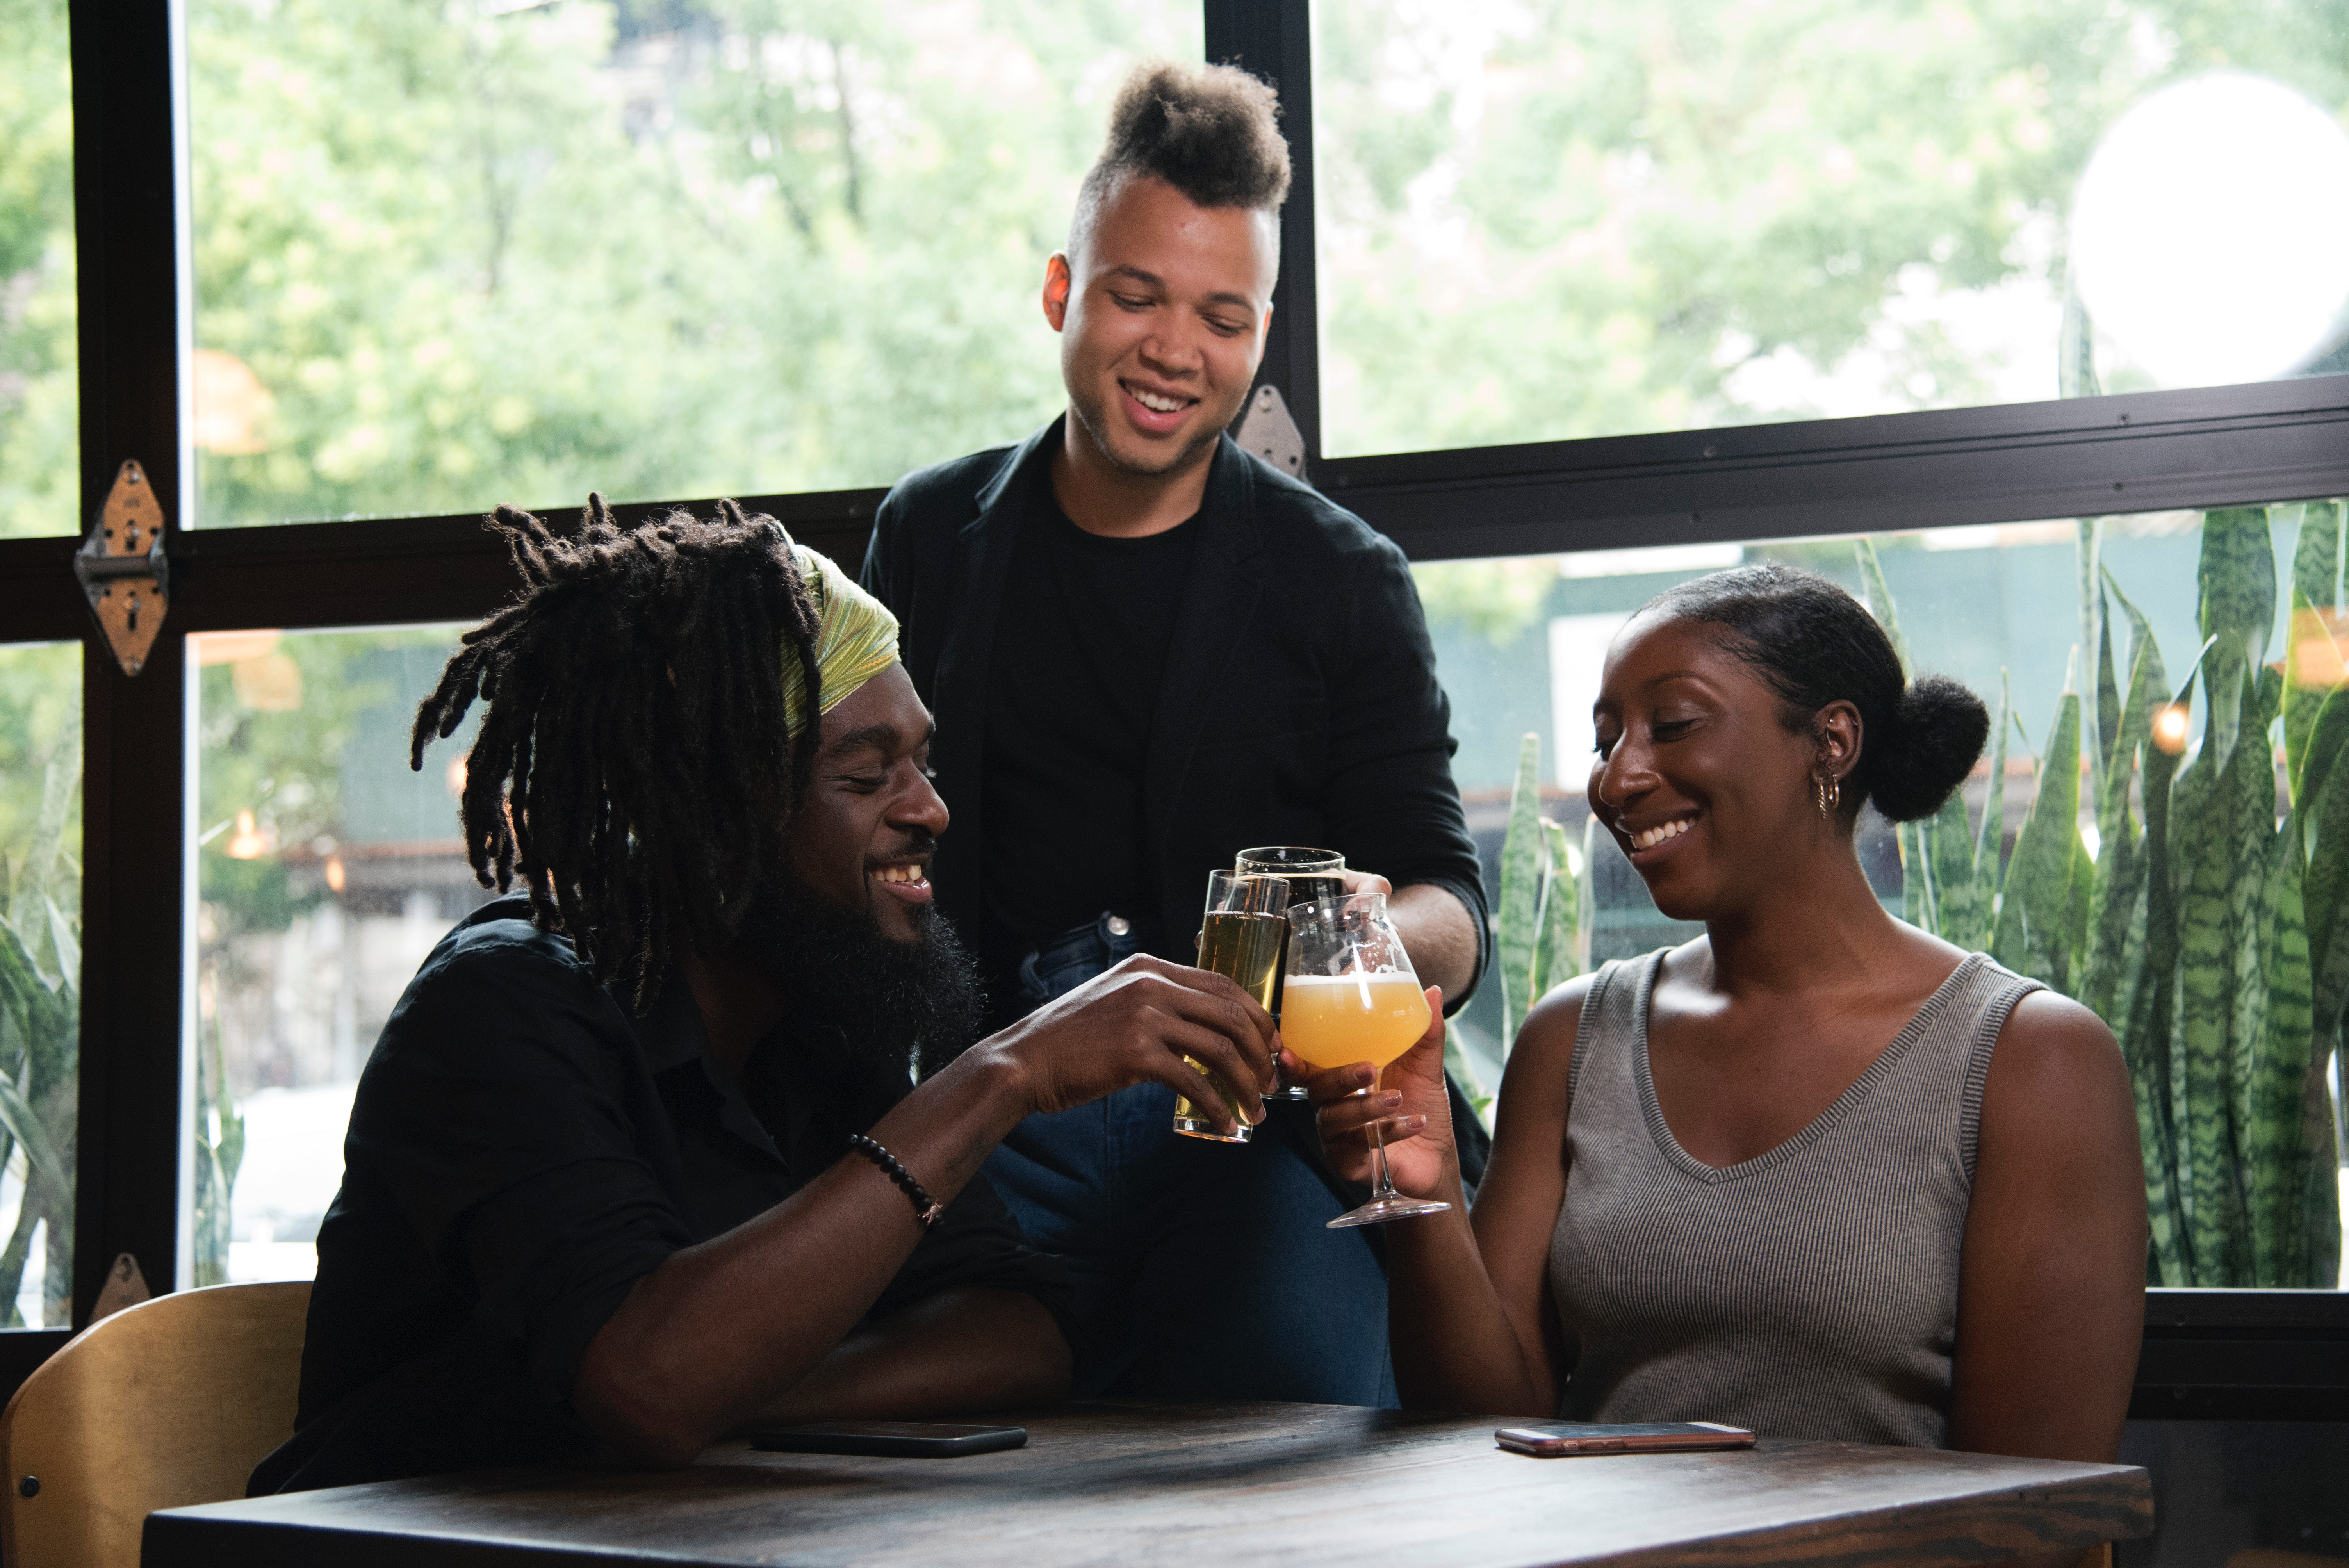 Anheuser-Busch Wants to Make Beer Photos More Diverse